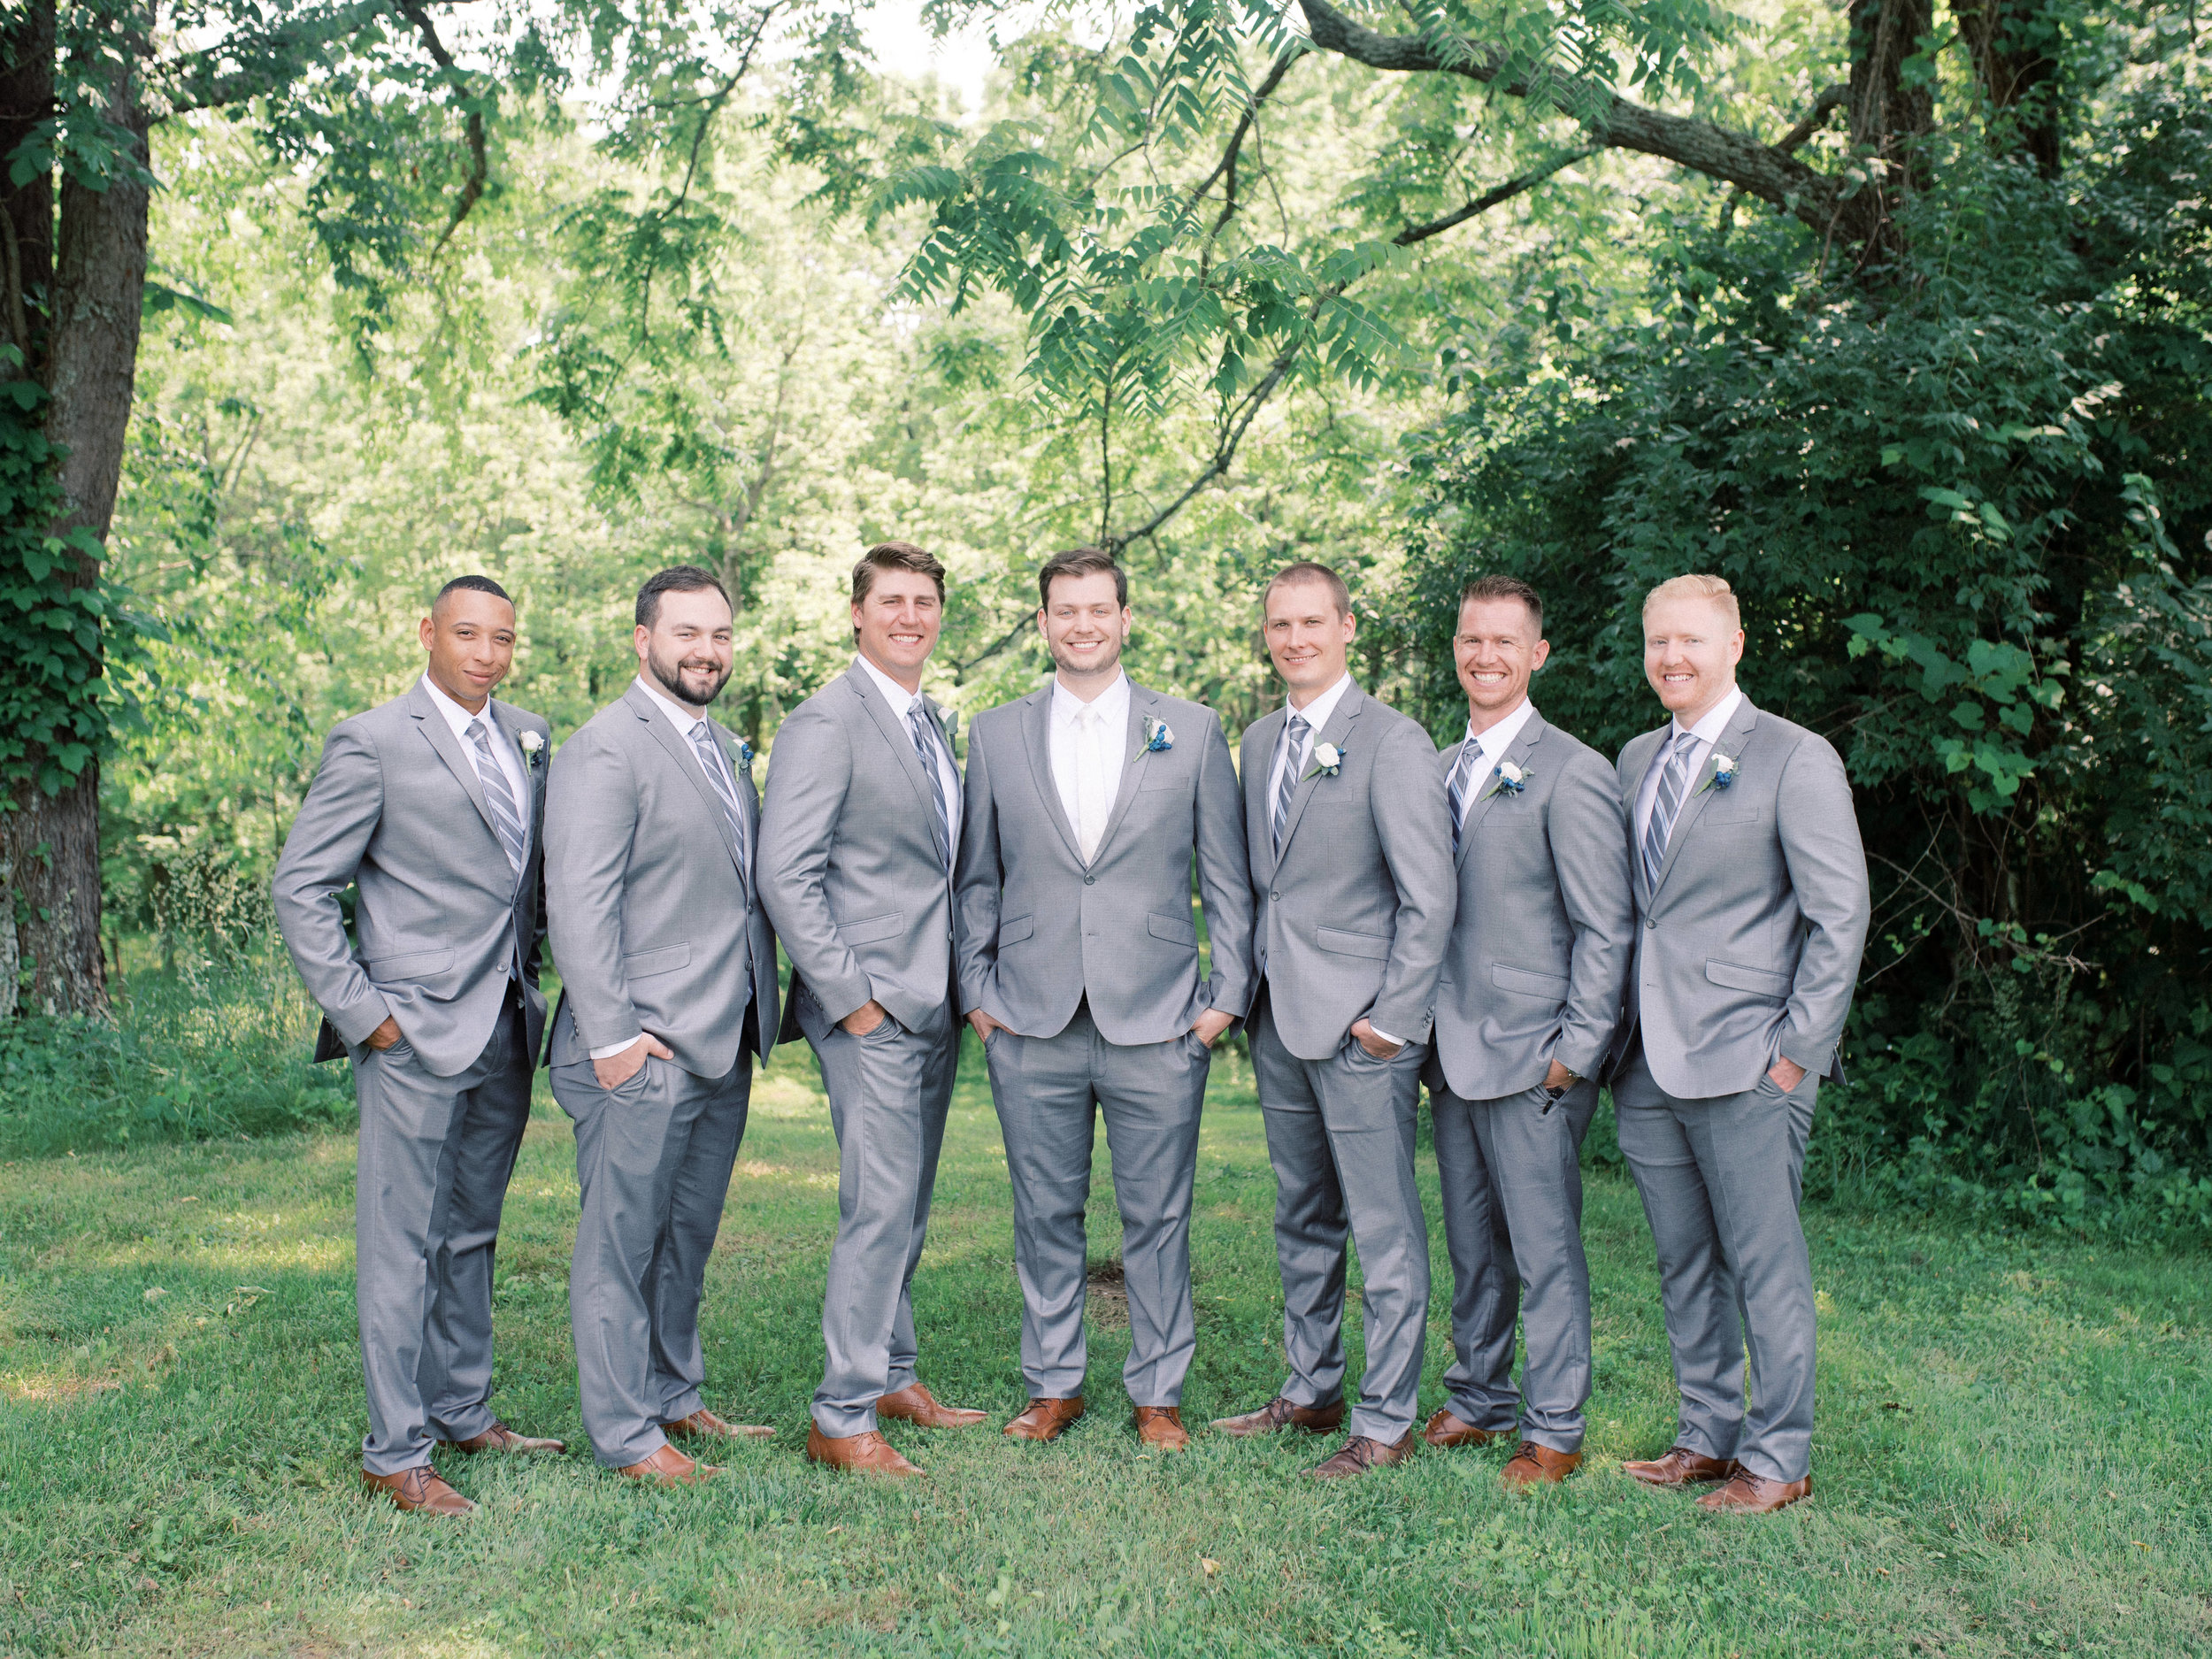 lexington-wedding-photographer-groom-style